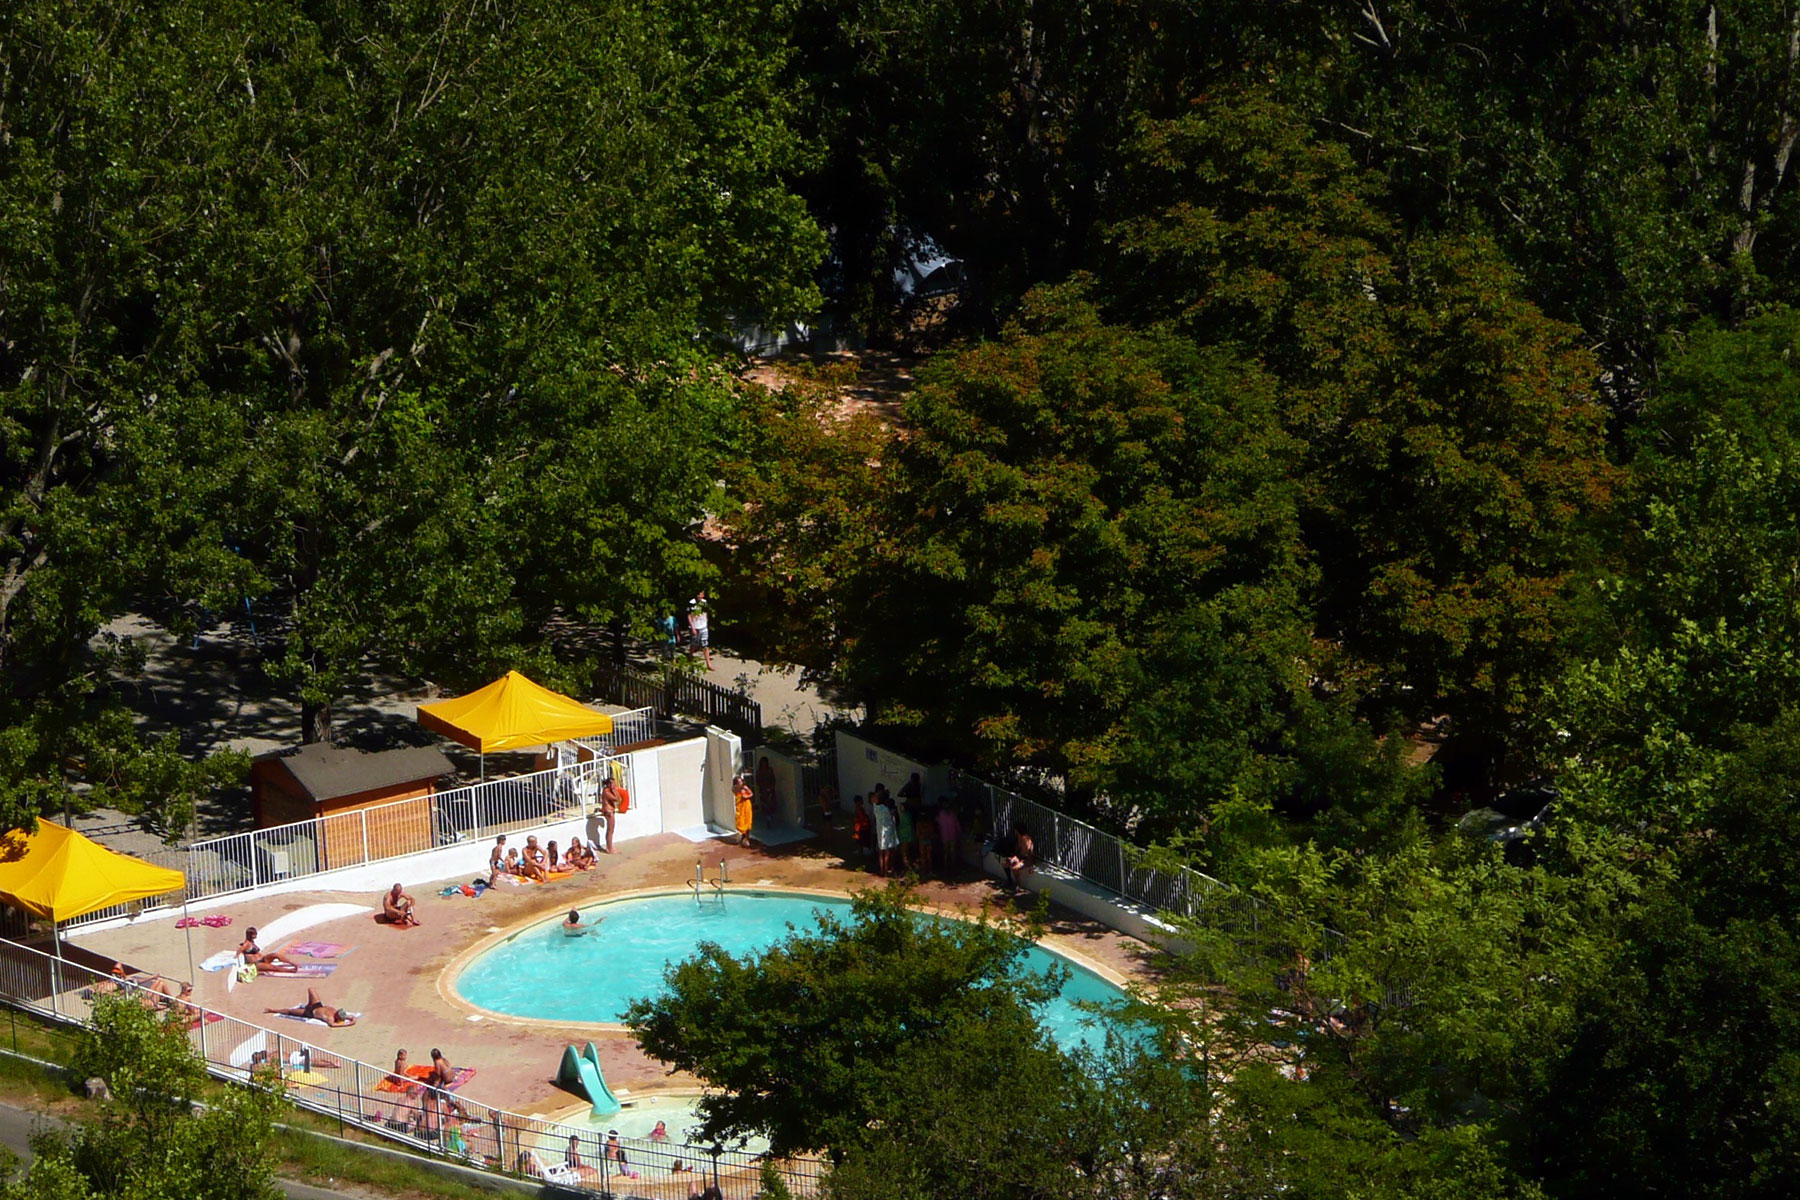 Domaine chasteuil provence camping verdon castellane for Camping provence avec piscine